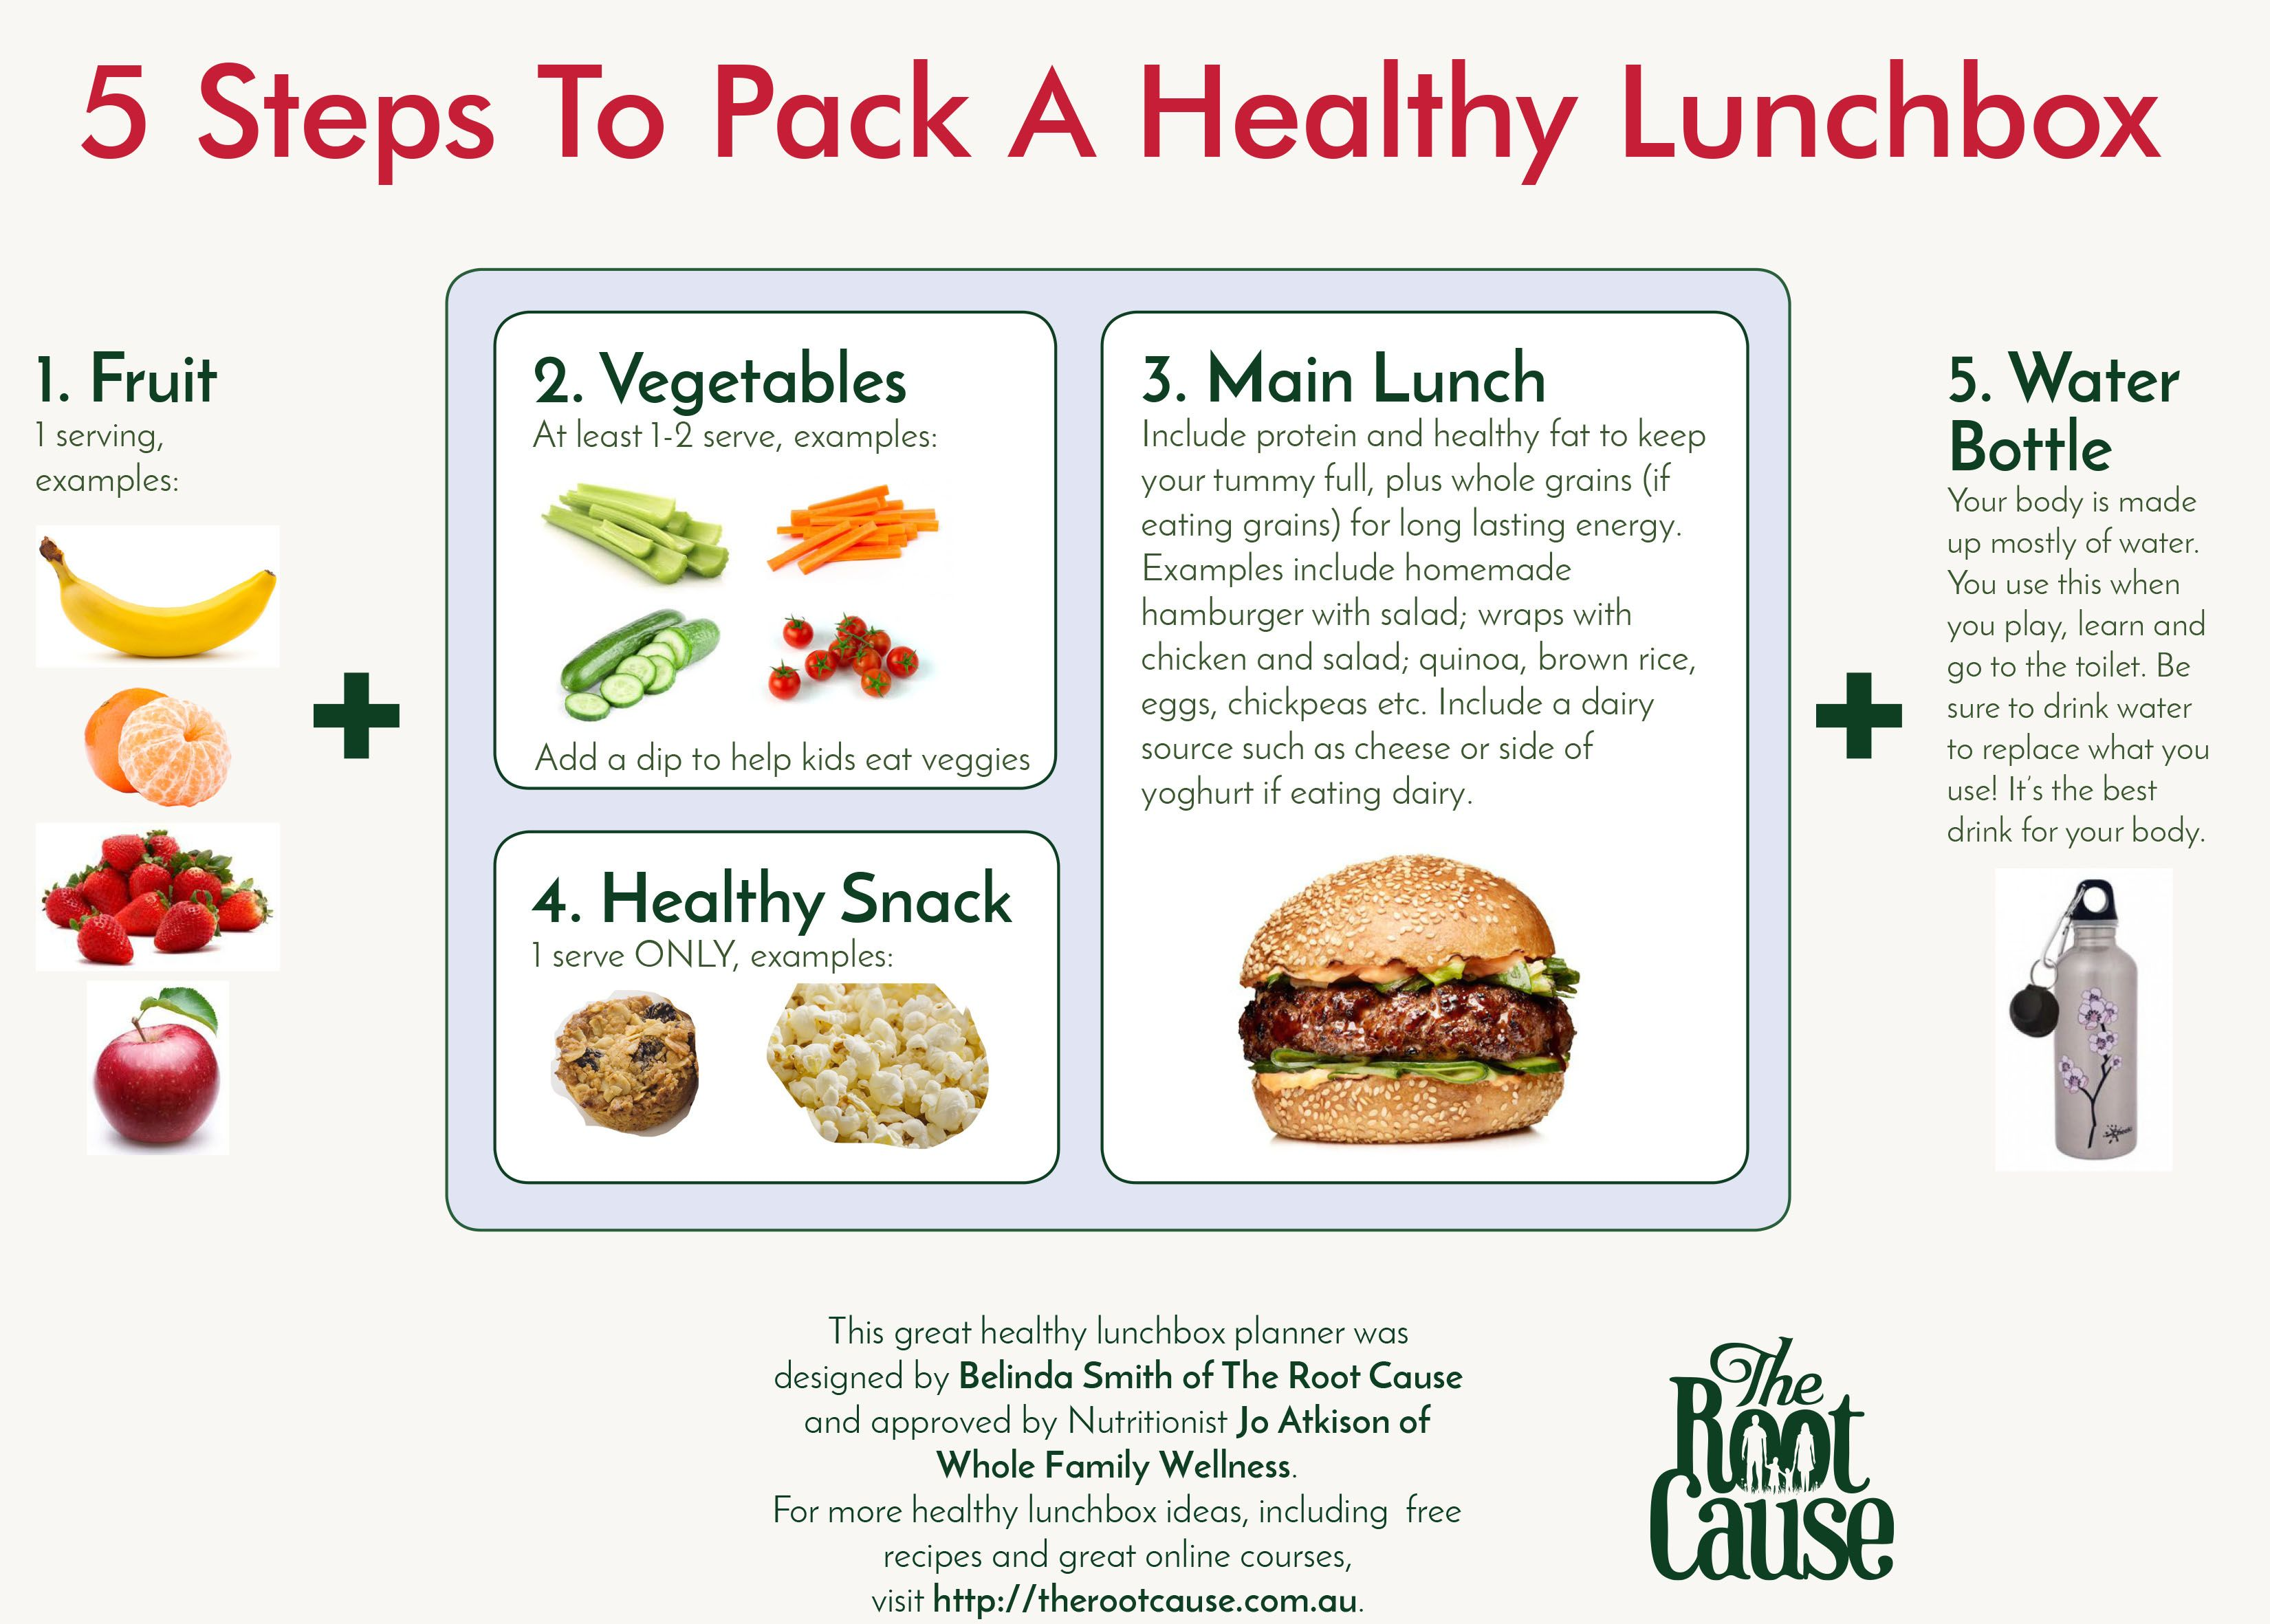 Grab This Template With 5 Steps To Pack A Healthy Lunchbox